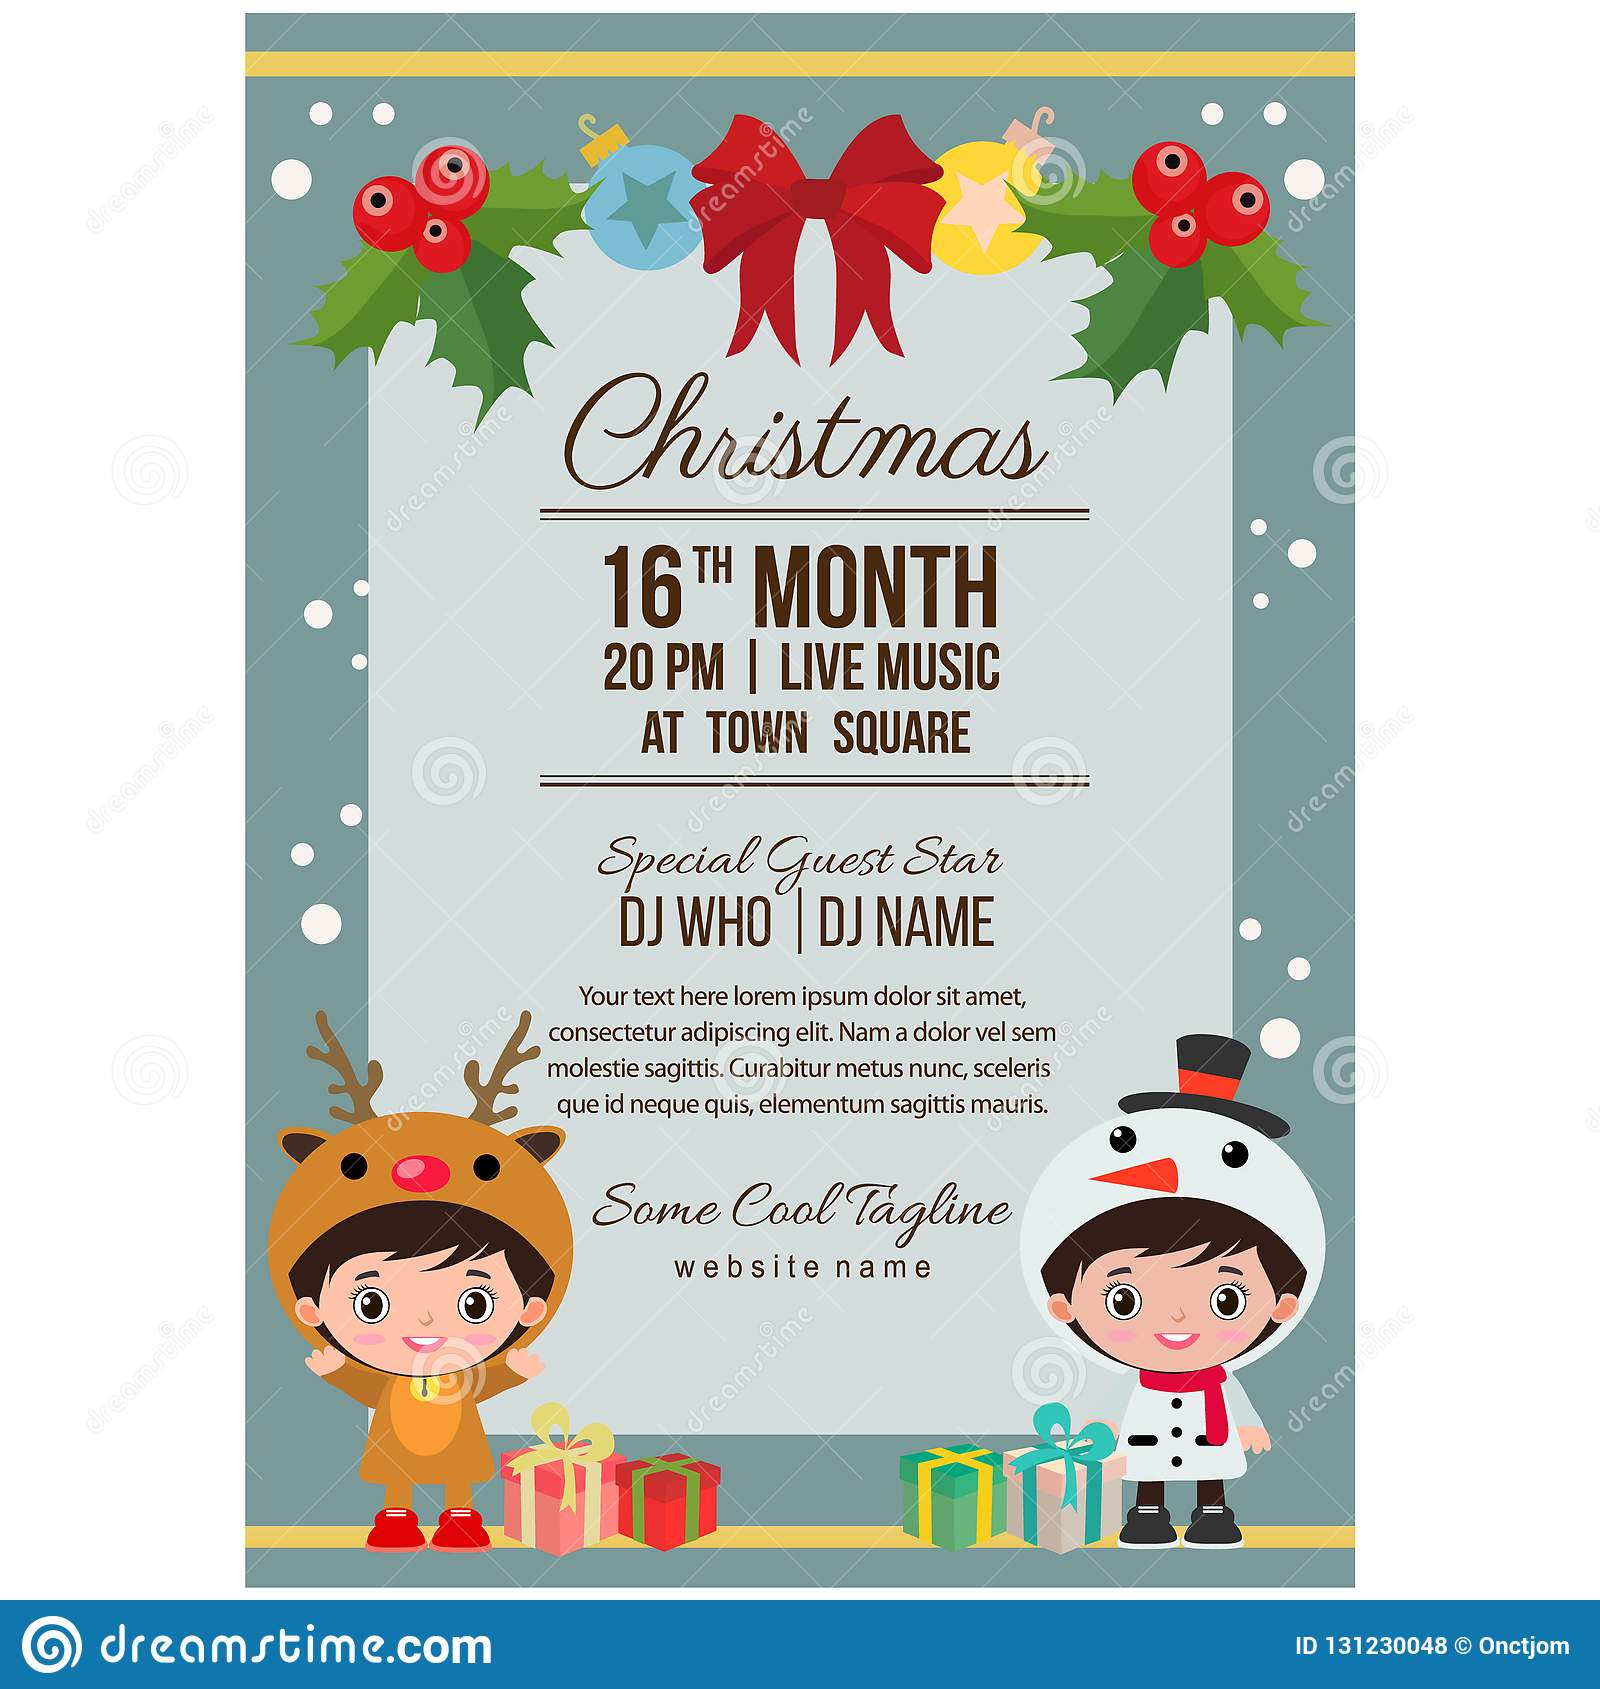 Cute Christmas Party.Cute Christmas Party Poster Costume Kids Reindeer Snowman